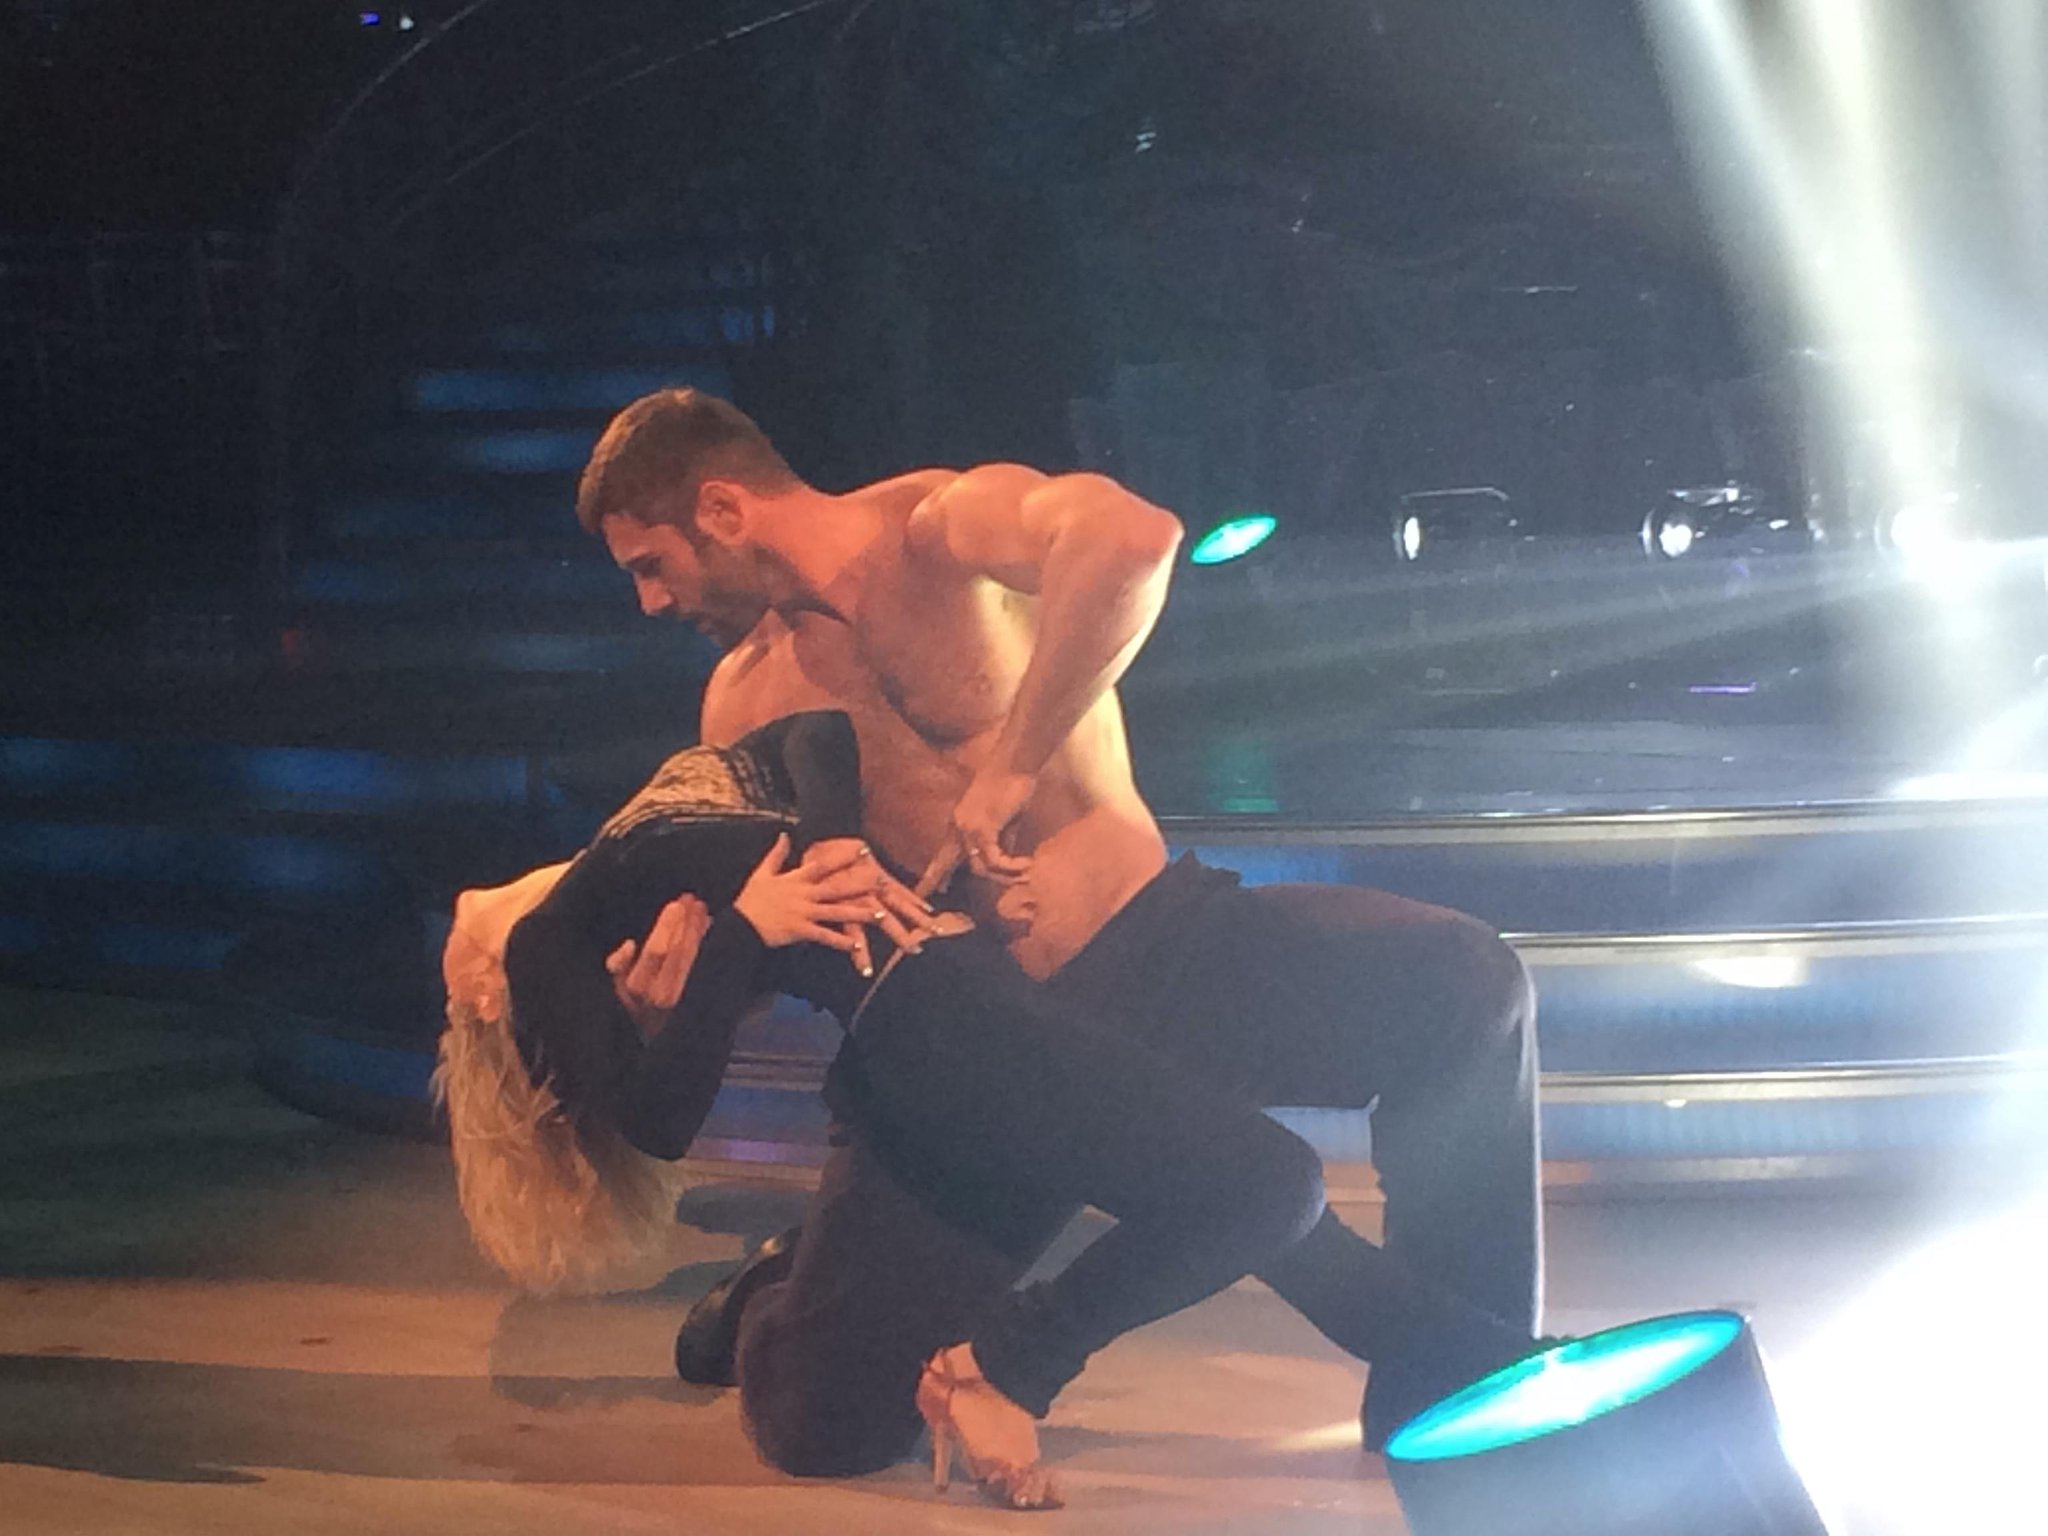 RT @Richardbbc: A torsotastic Throwback to Strictly rehearsal day for @RugbyBenCohen and @KRihanoff http://t.co/c2UH1Ssvyp